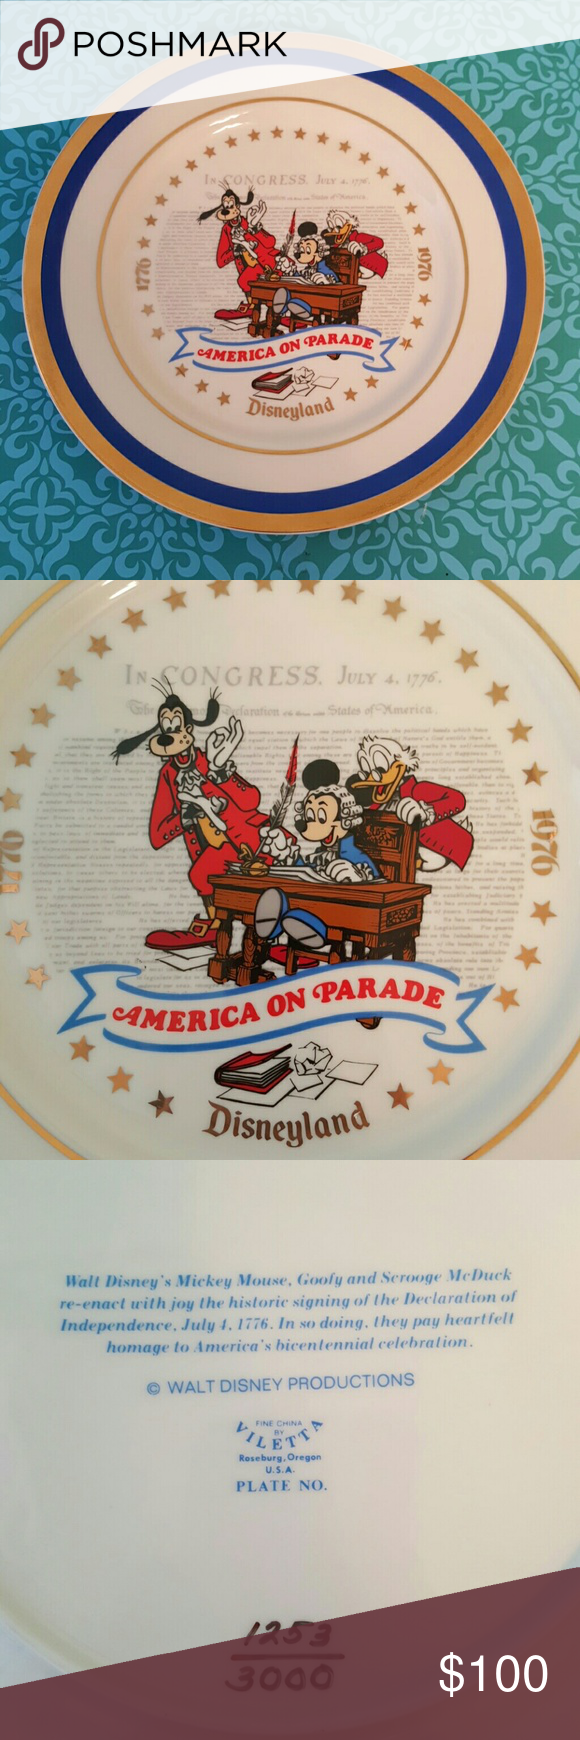 Spotted while shopping on Poshmark: Disney America on Parade 1976 Bicentennial Plate! #poshmark #fashion #shopping #style #disney  #Other